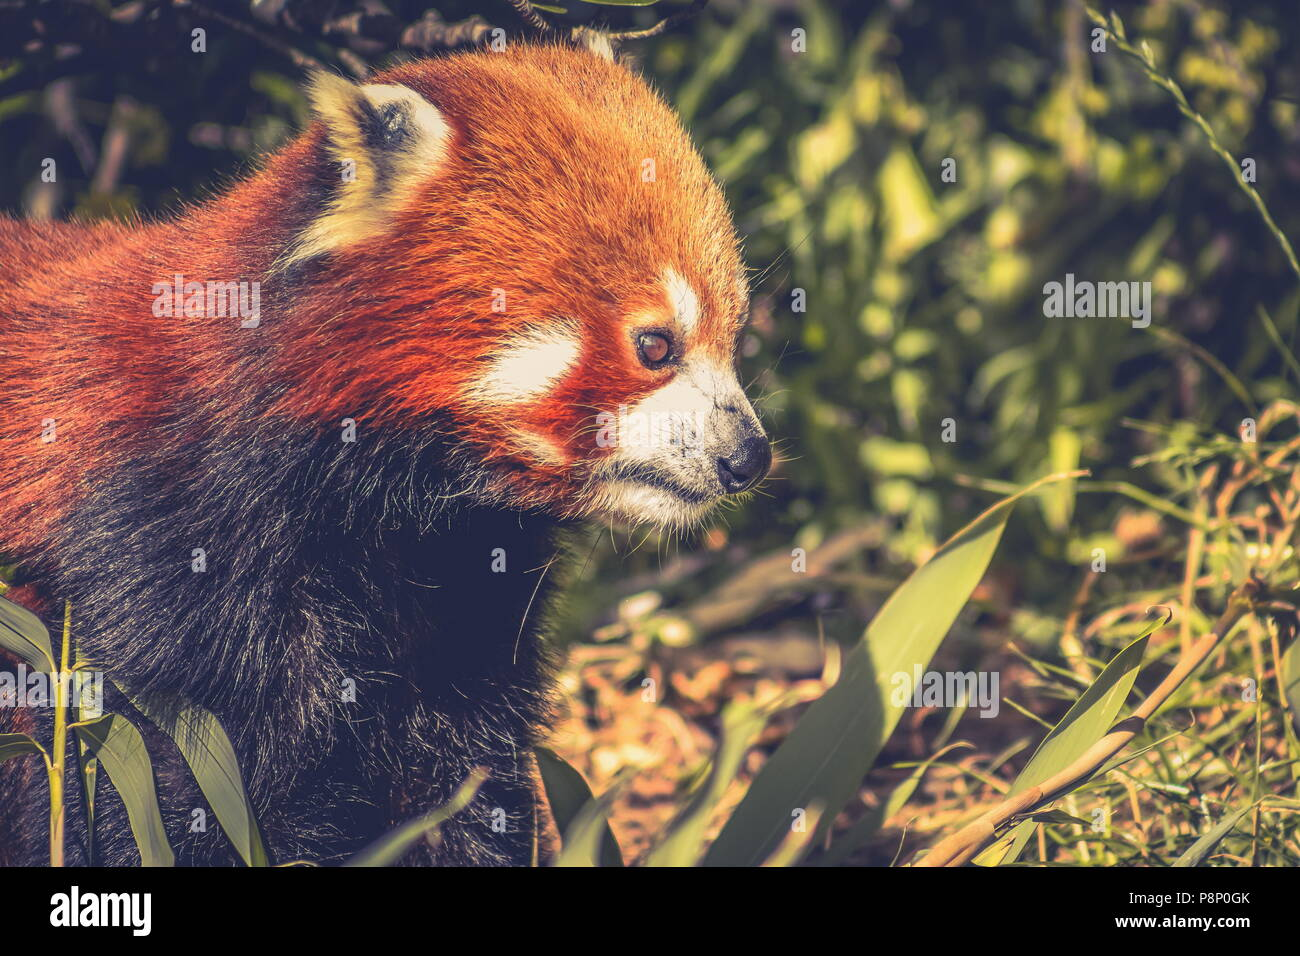 Close up image d'un panda rouge (Ailurus fulgens) with copy space Photo Stock